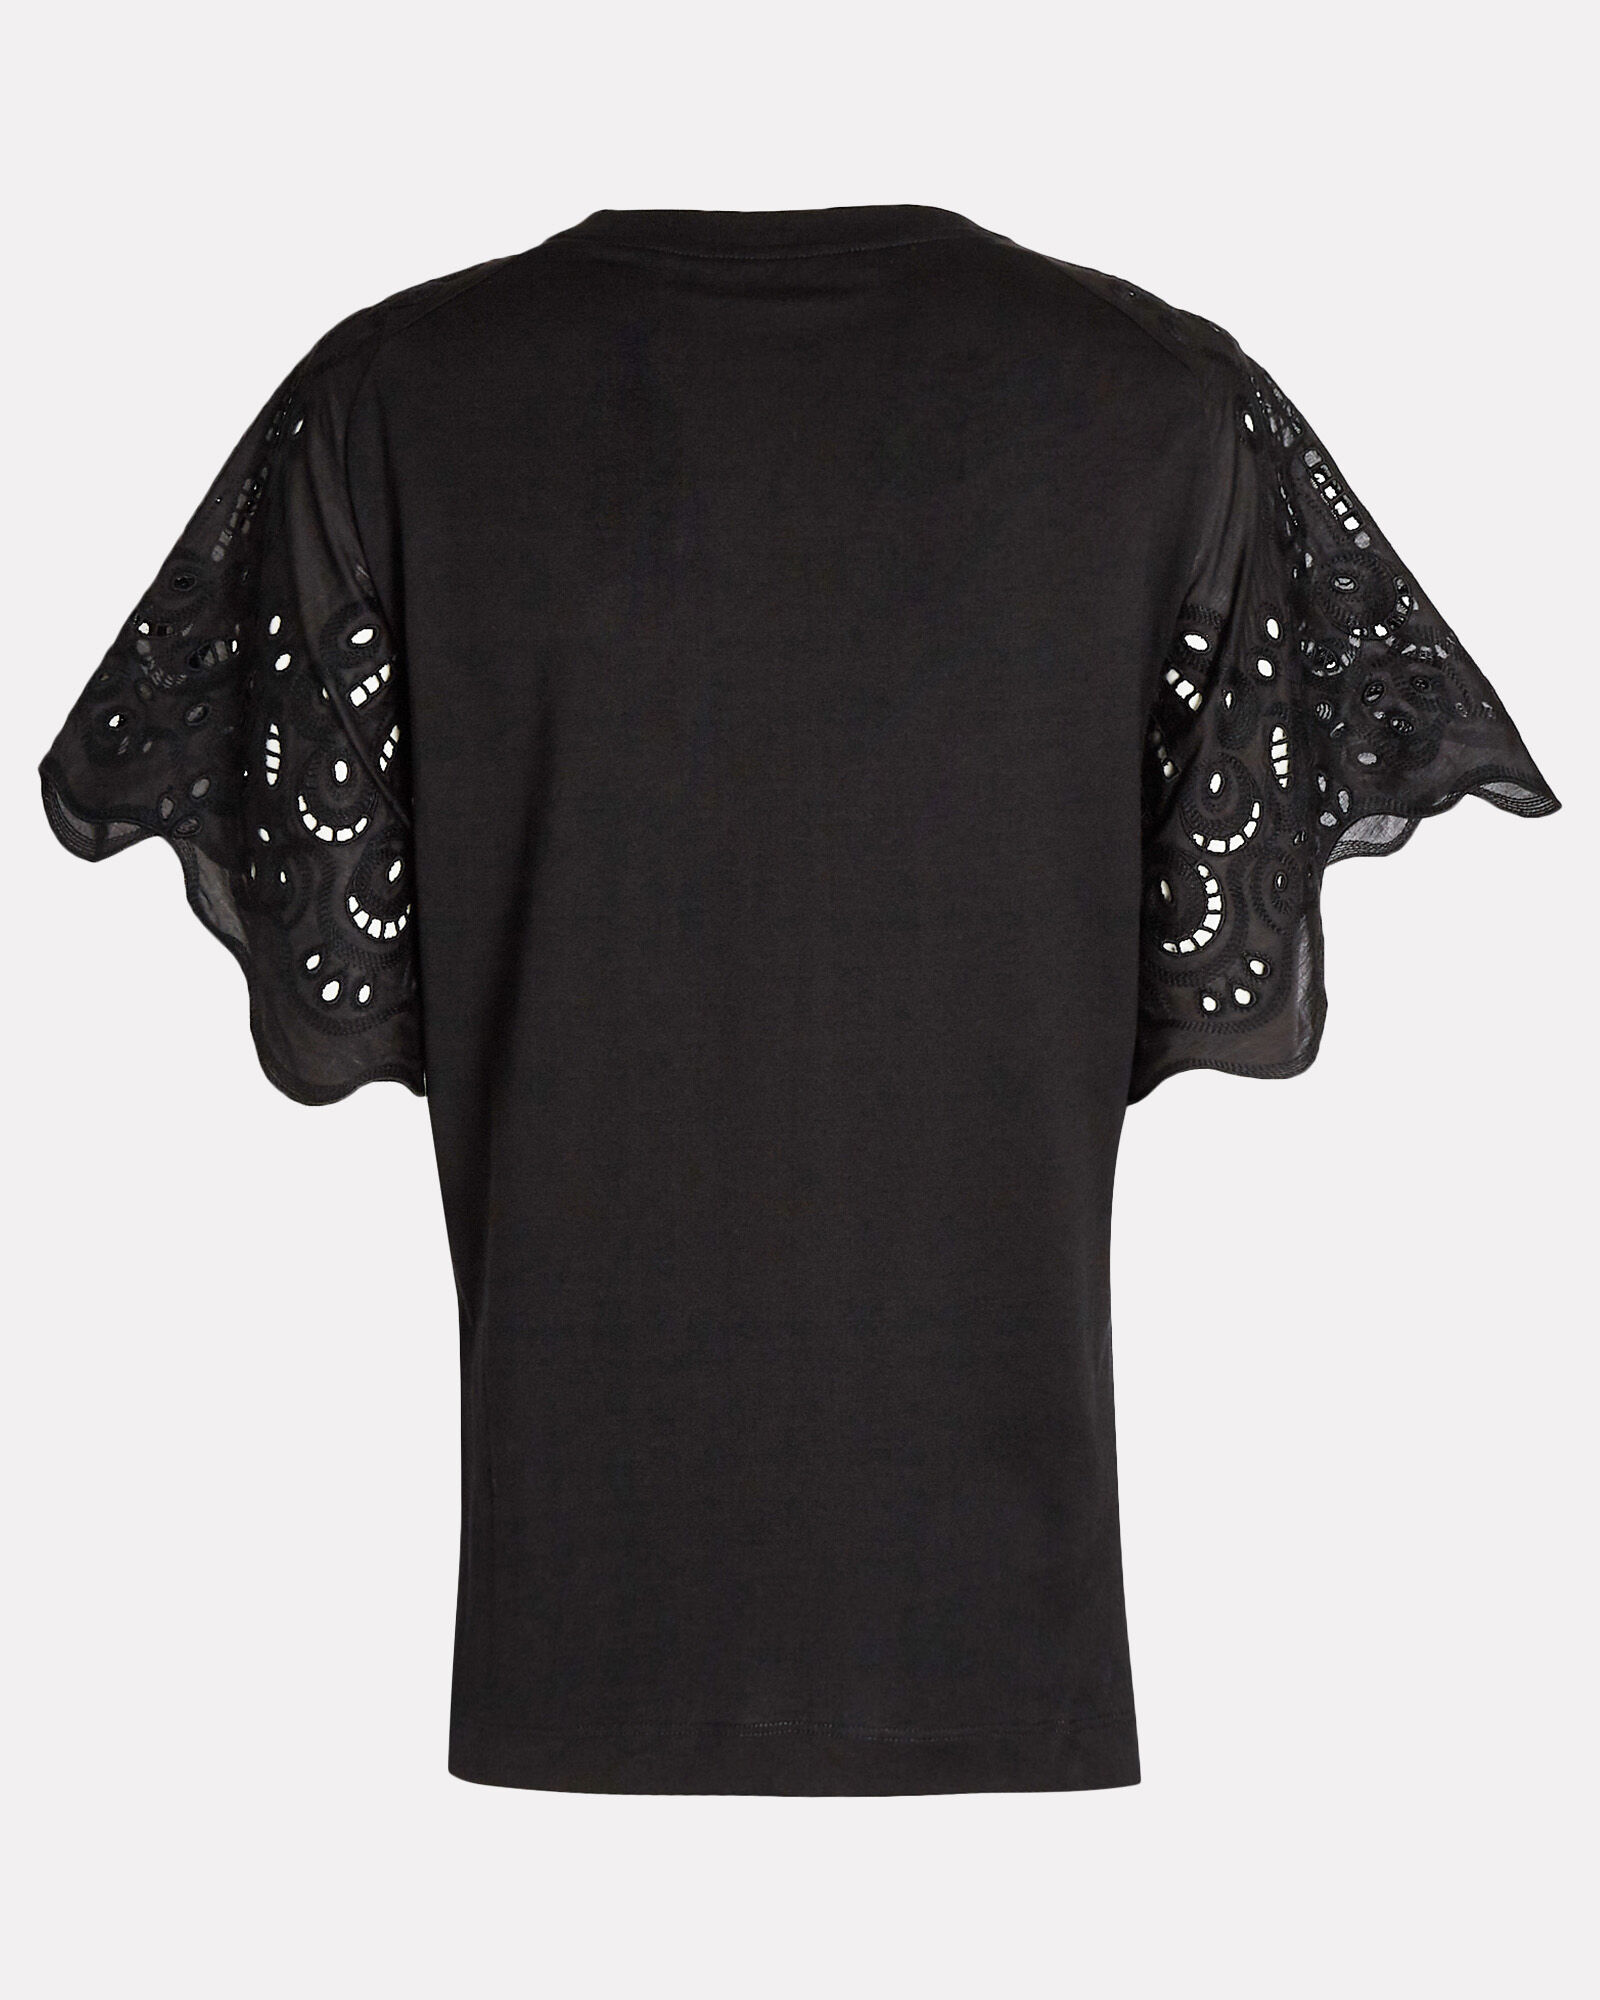 Cotton Eyelet Short Sleeve T-Shirt, BLACK, hi-res